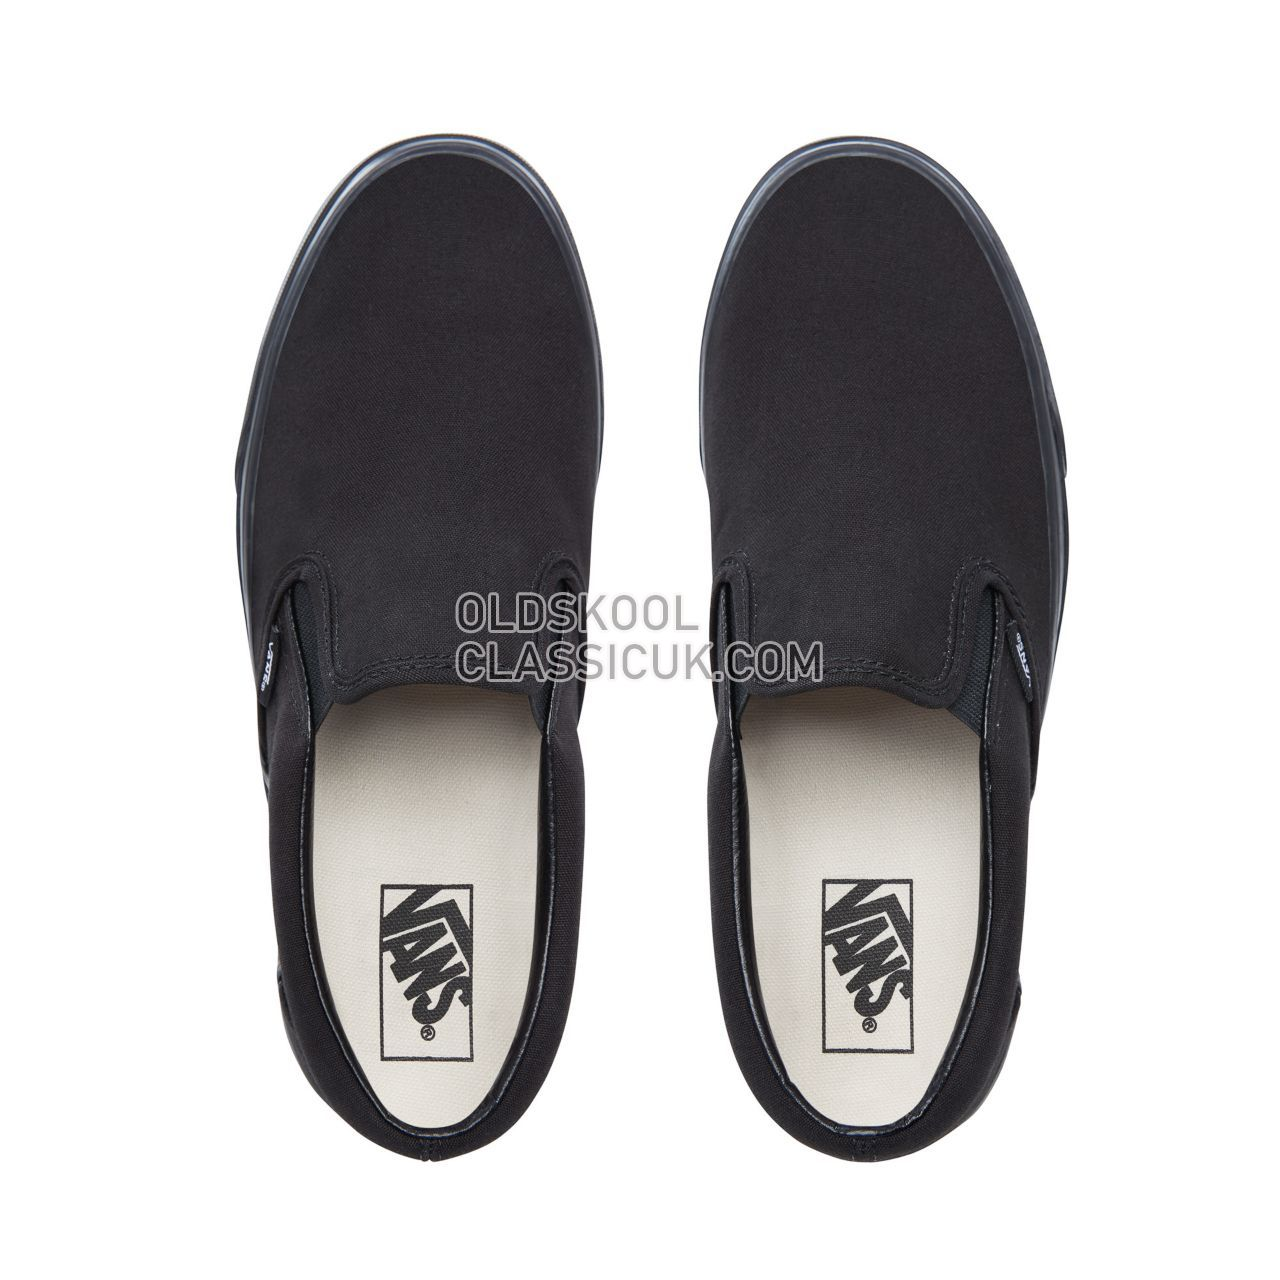 Vans Classic Slip-On Sneakers Mens Black VN000EYEBKA Shoes